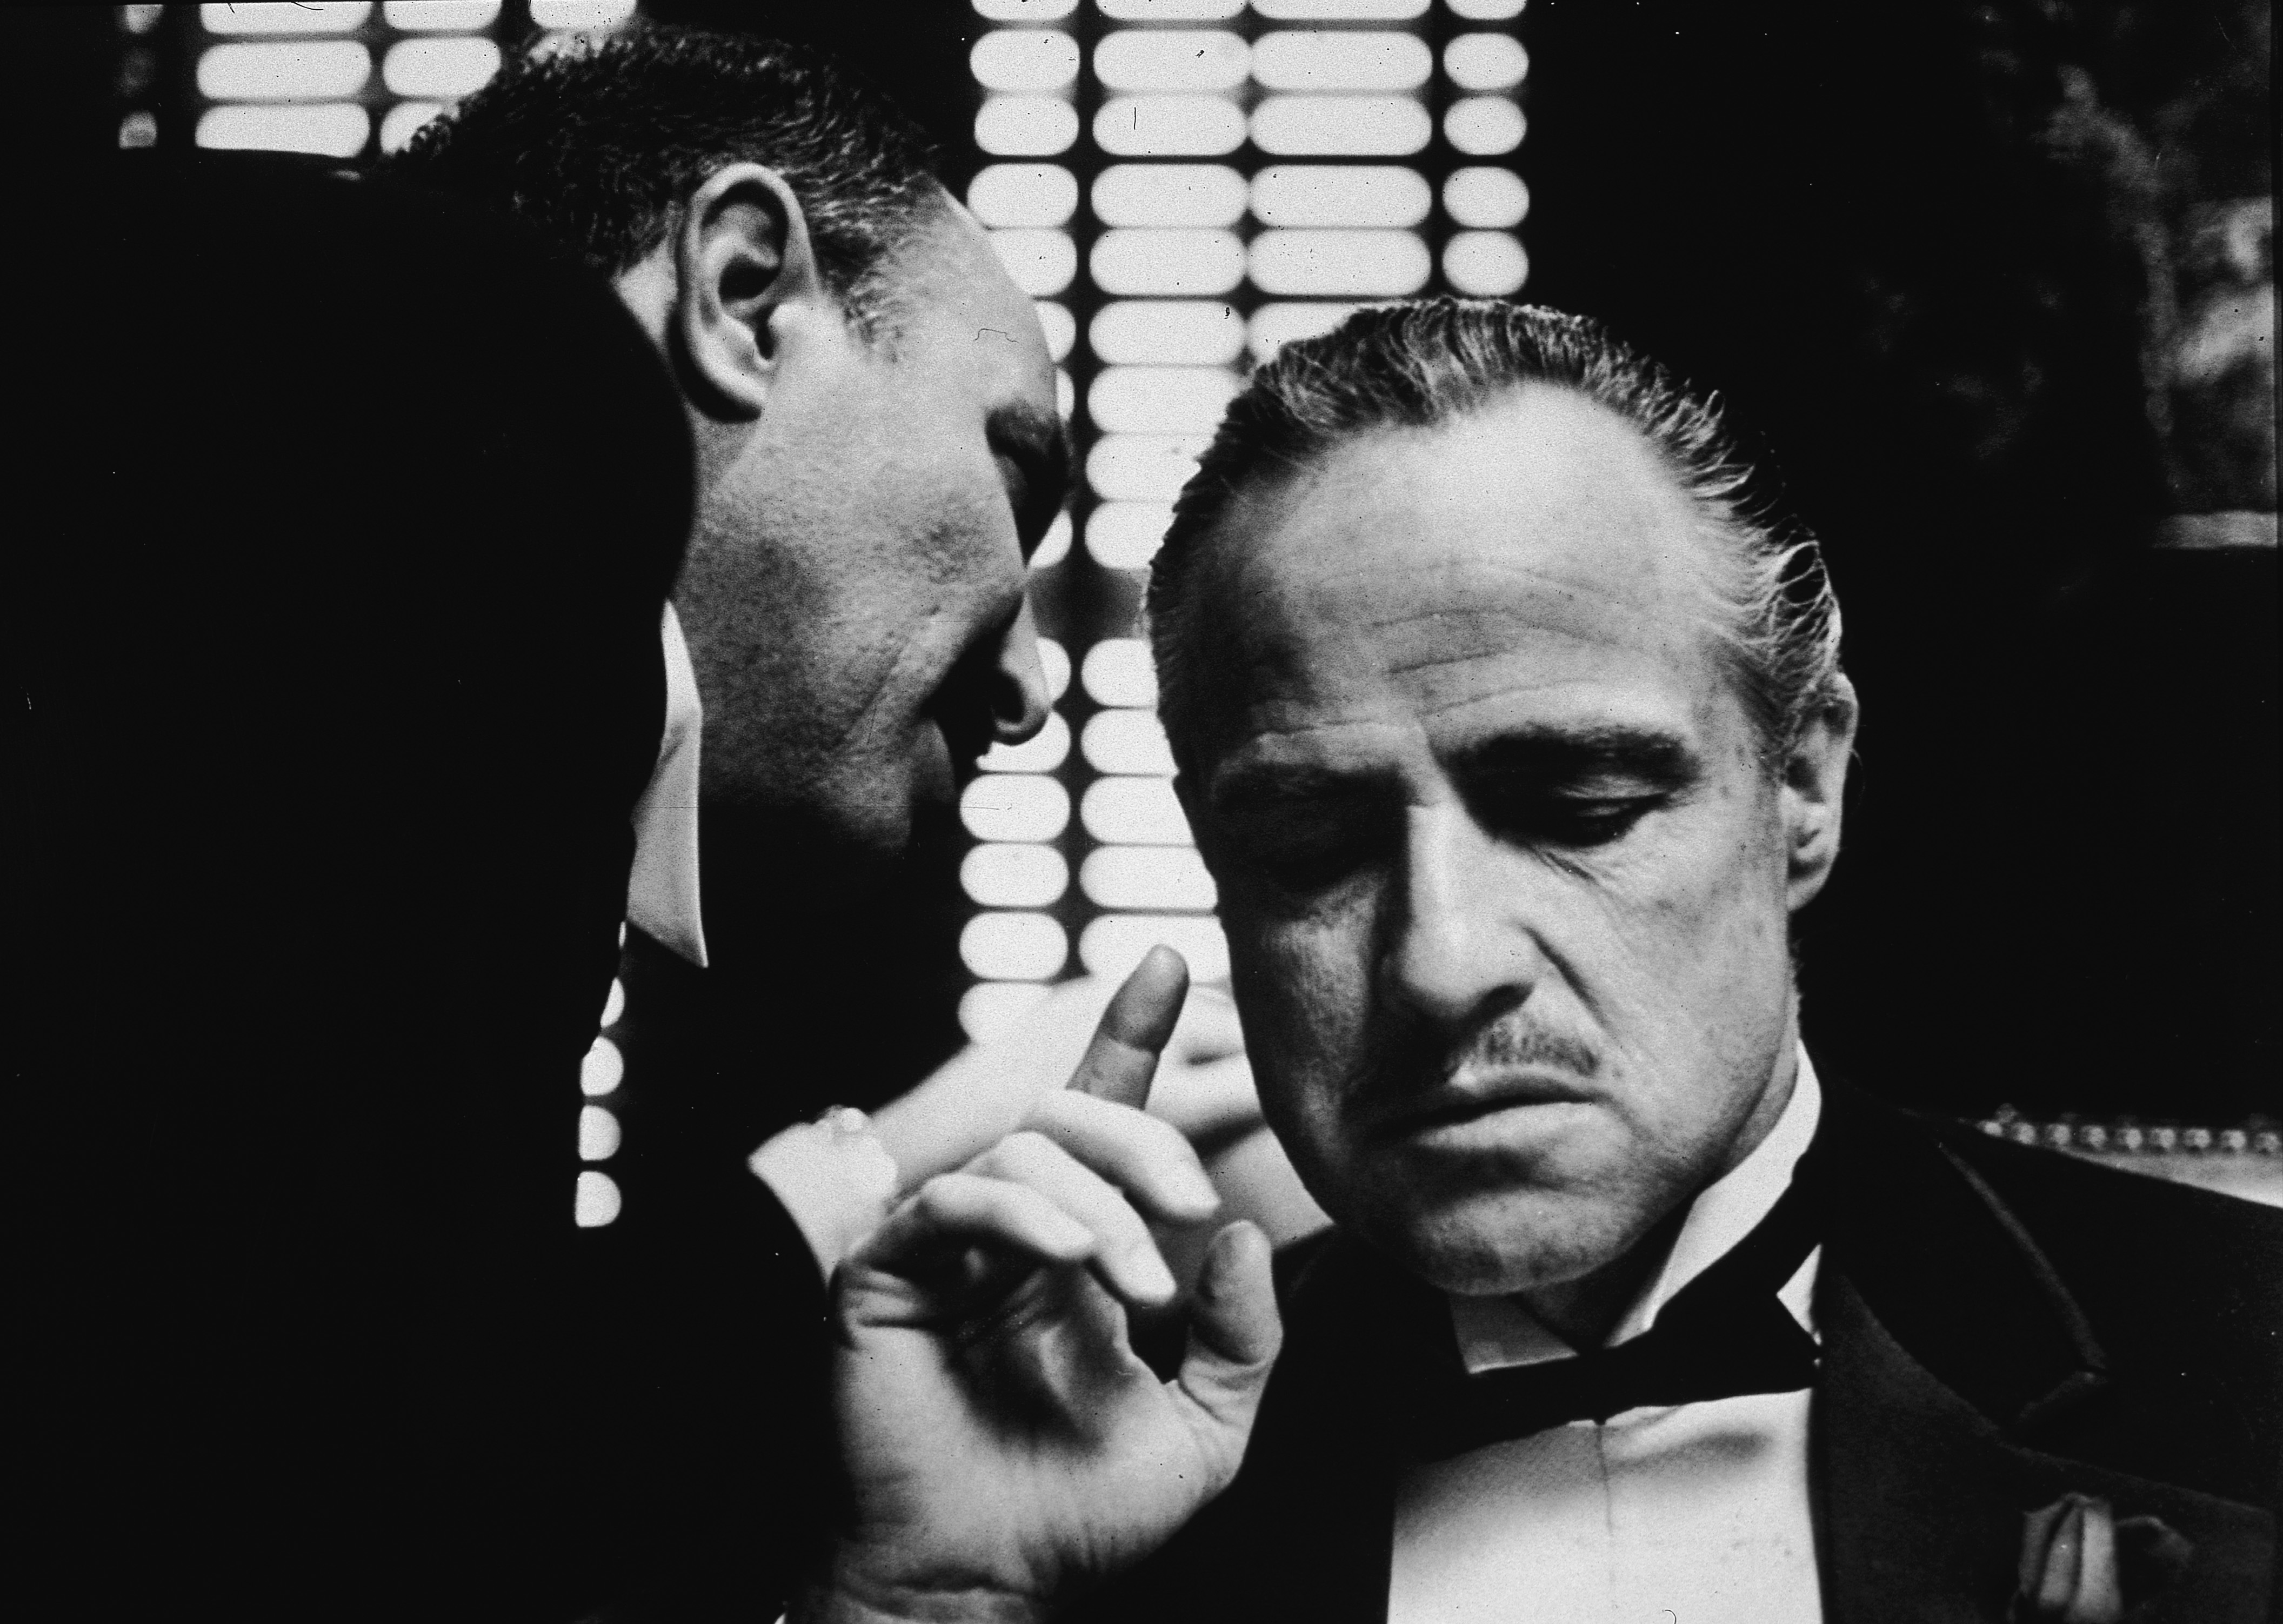 American actor Marlon Brando listens as an unidentified actor speaks close to one ear in a still from the film, 'The Godfather,' directed by Francis Coppola, 1972